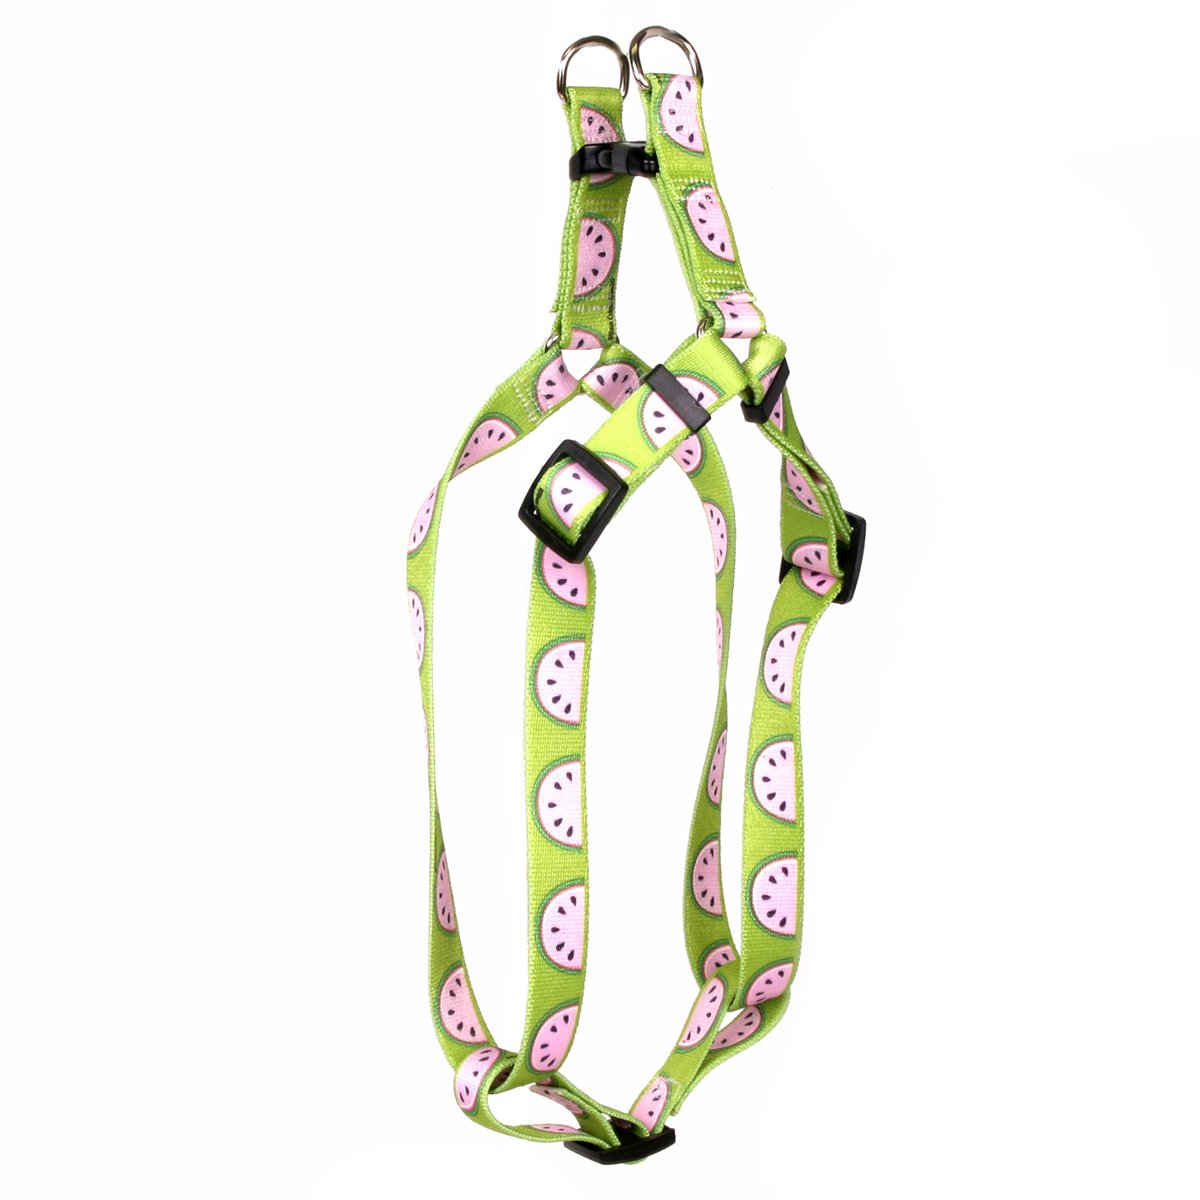 Yellow Dog Design Wonderful Watermelons Step-in Dog Harness-Medium-3/4 and fits Chest 15 to 25''